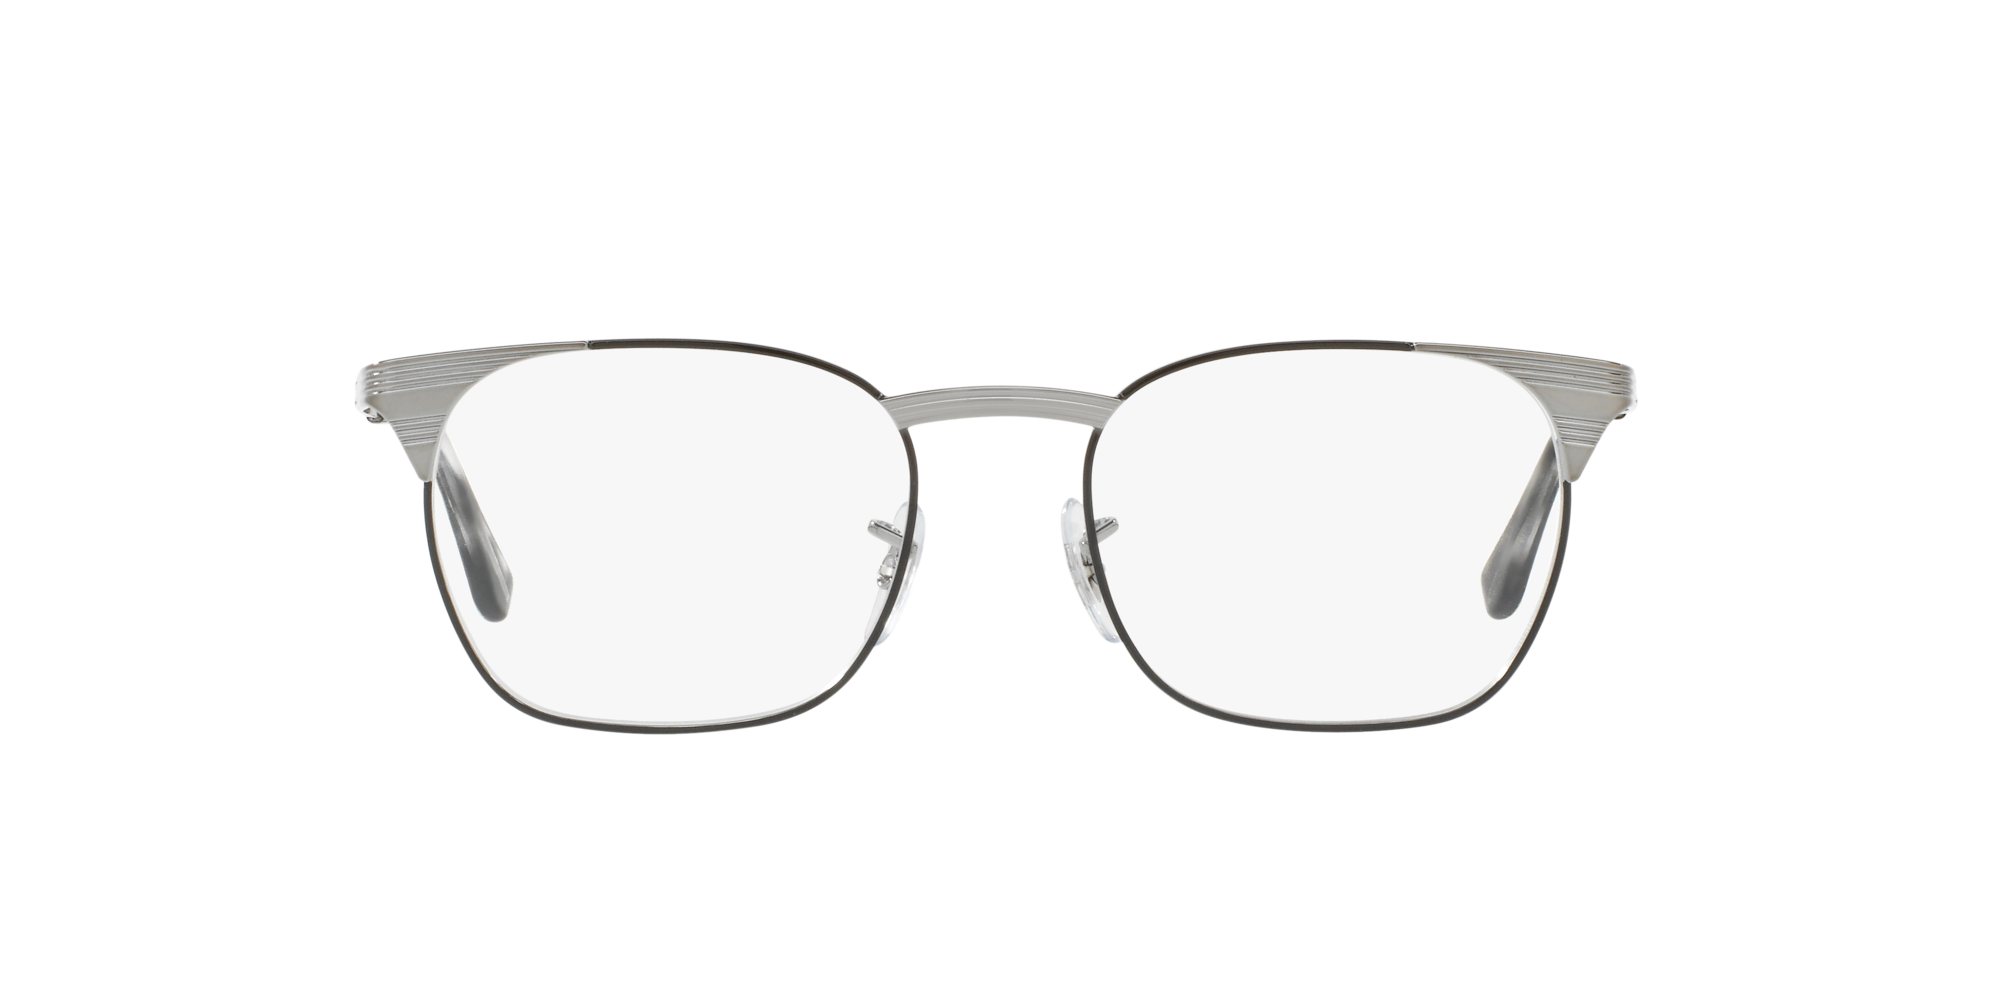 Image for RX6386 from LensCrafters   Glasses, Prescription Glasses Online, Eyewear